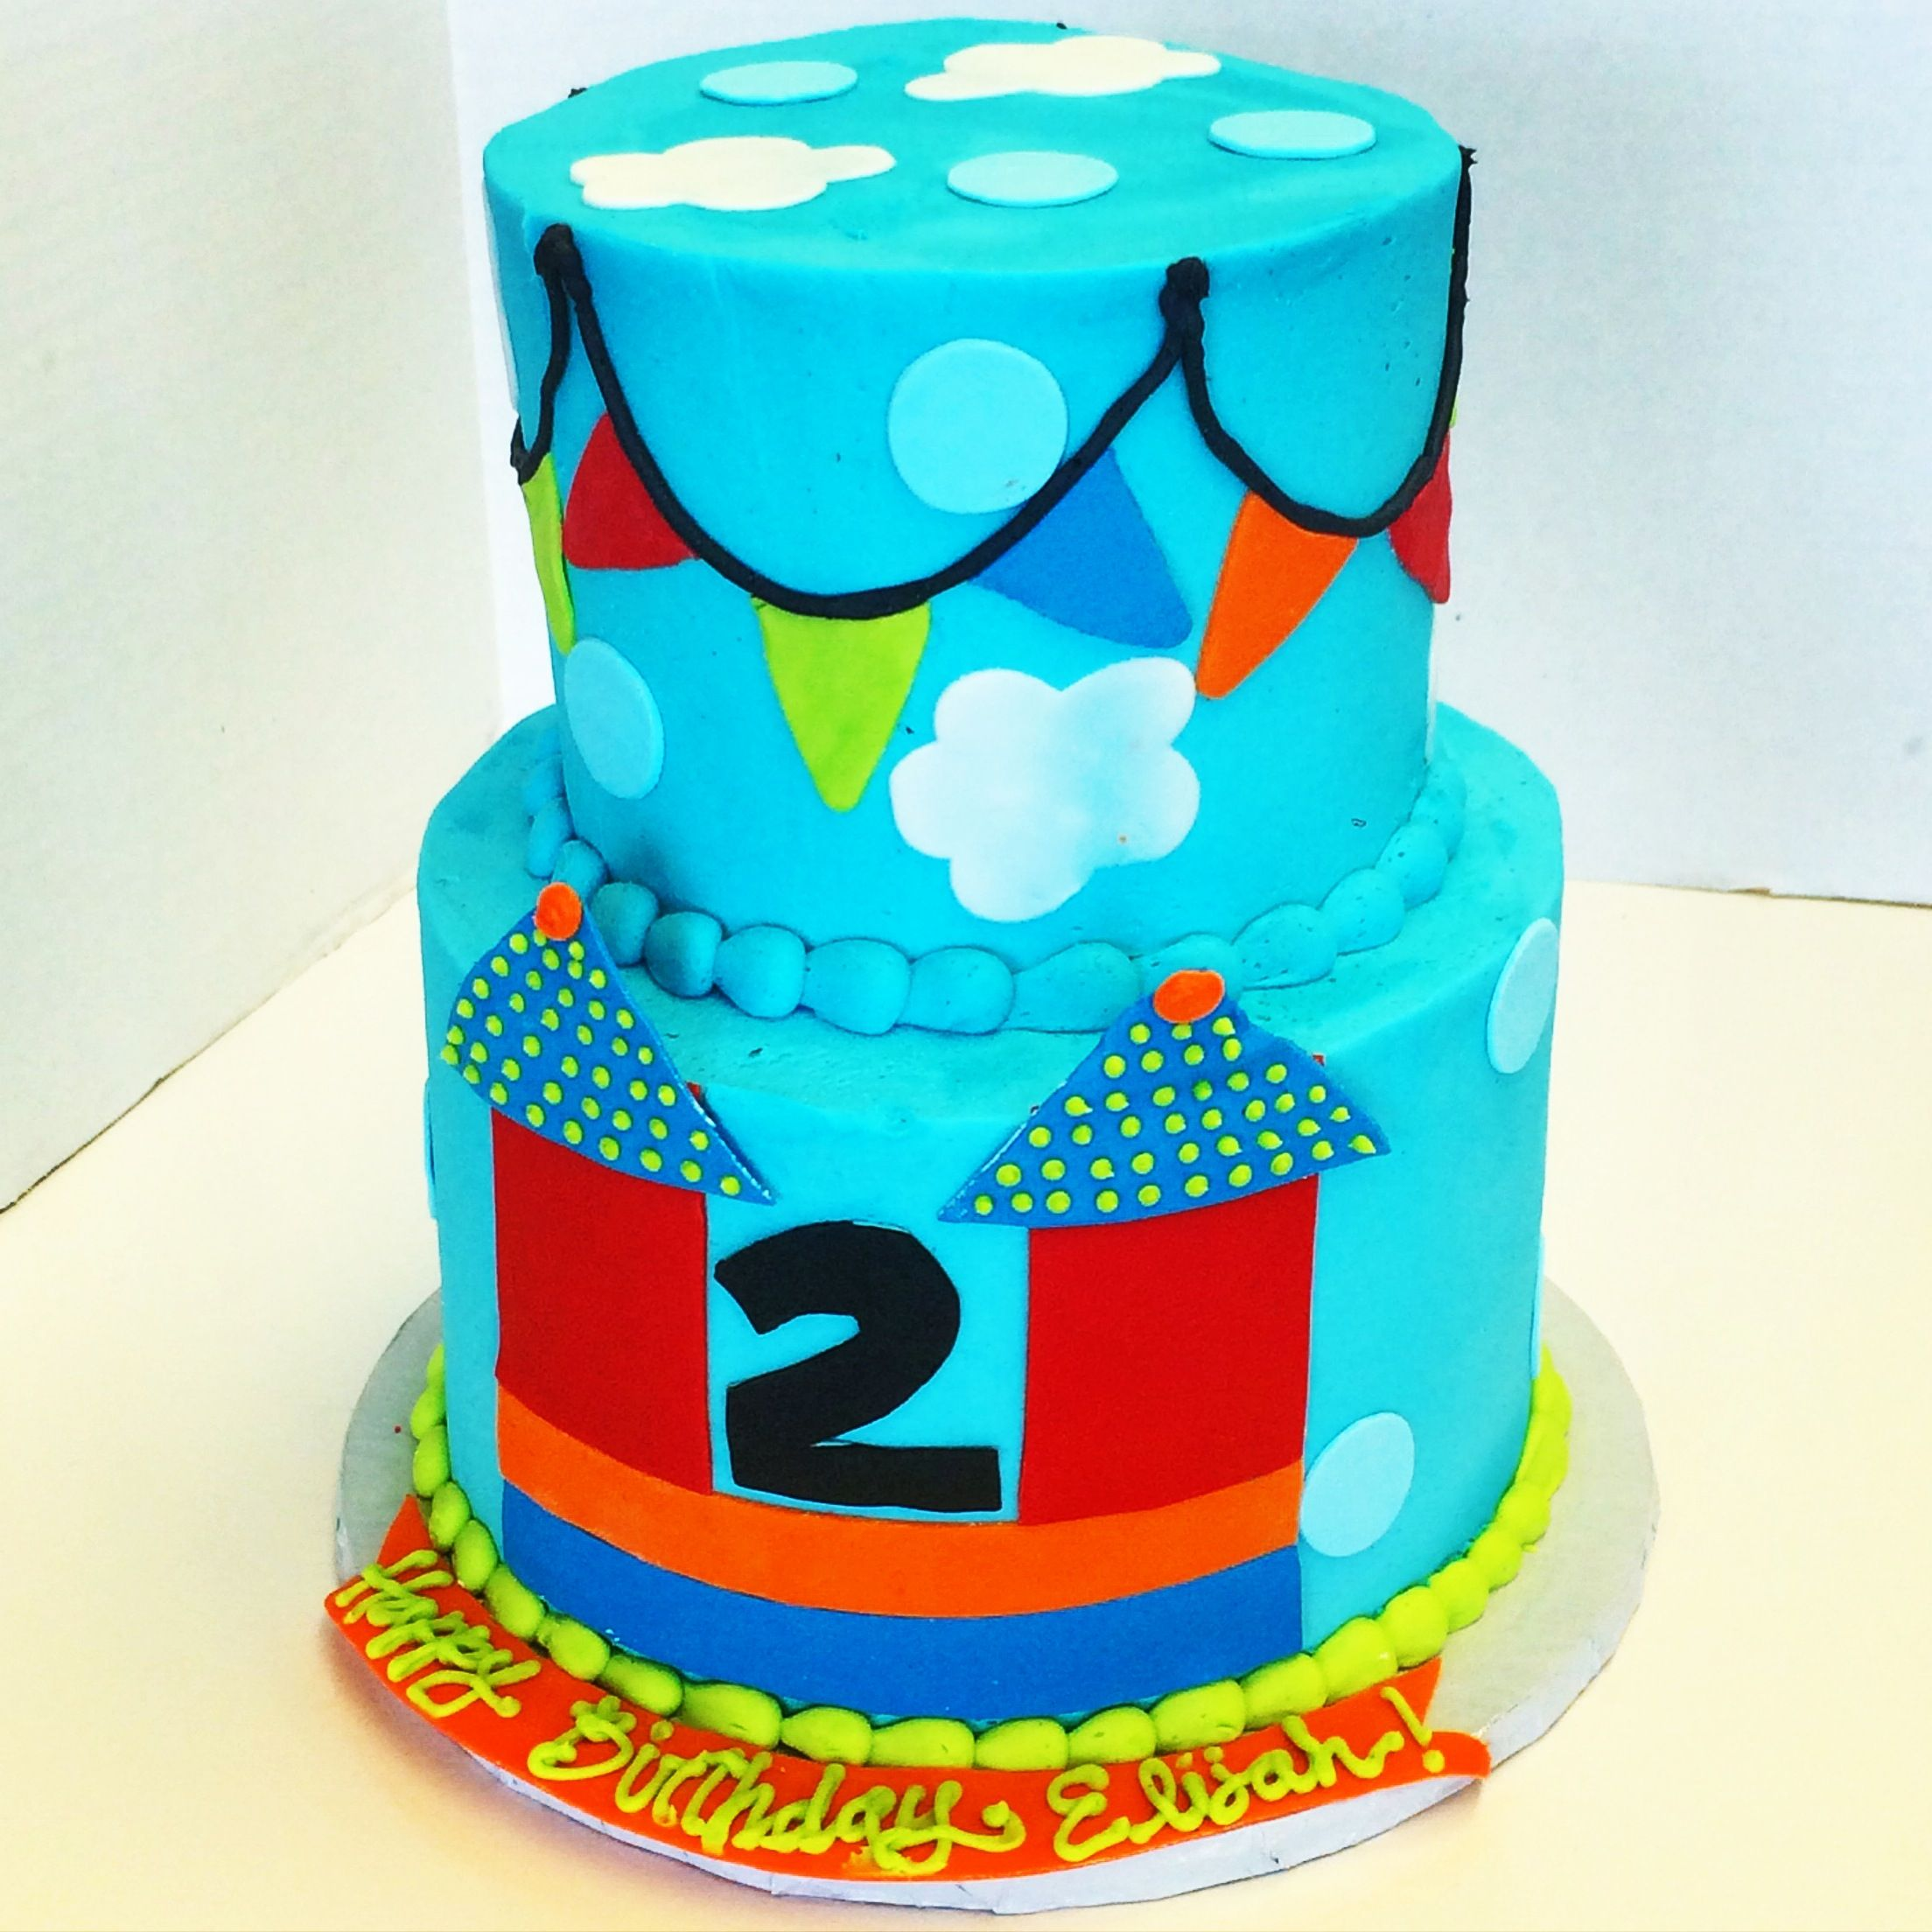 Two Tiered Bouncy House Themed Birthday Cake By Les Amis Bake Pe Baton Rouge